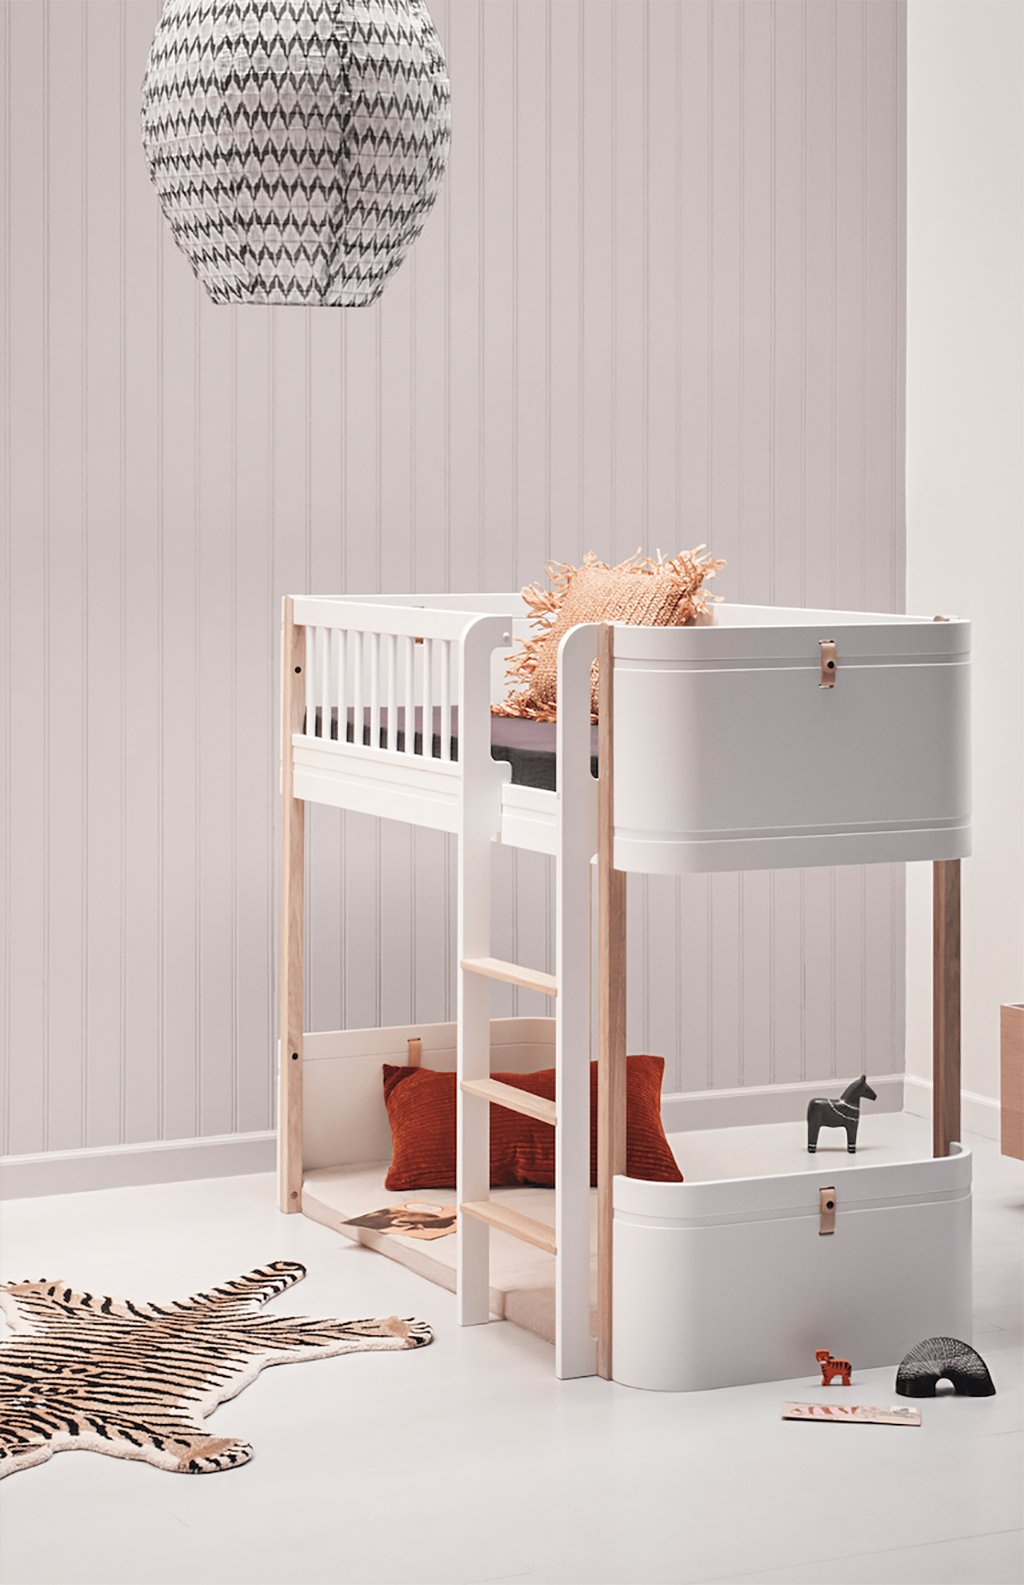 Oliver Furniture Wood Mini+ Low Loft Bed White/Oak - 5